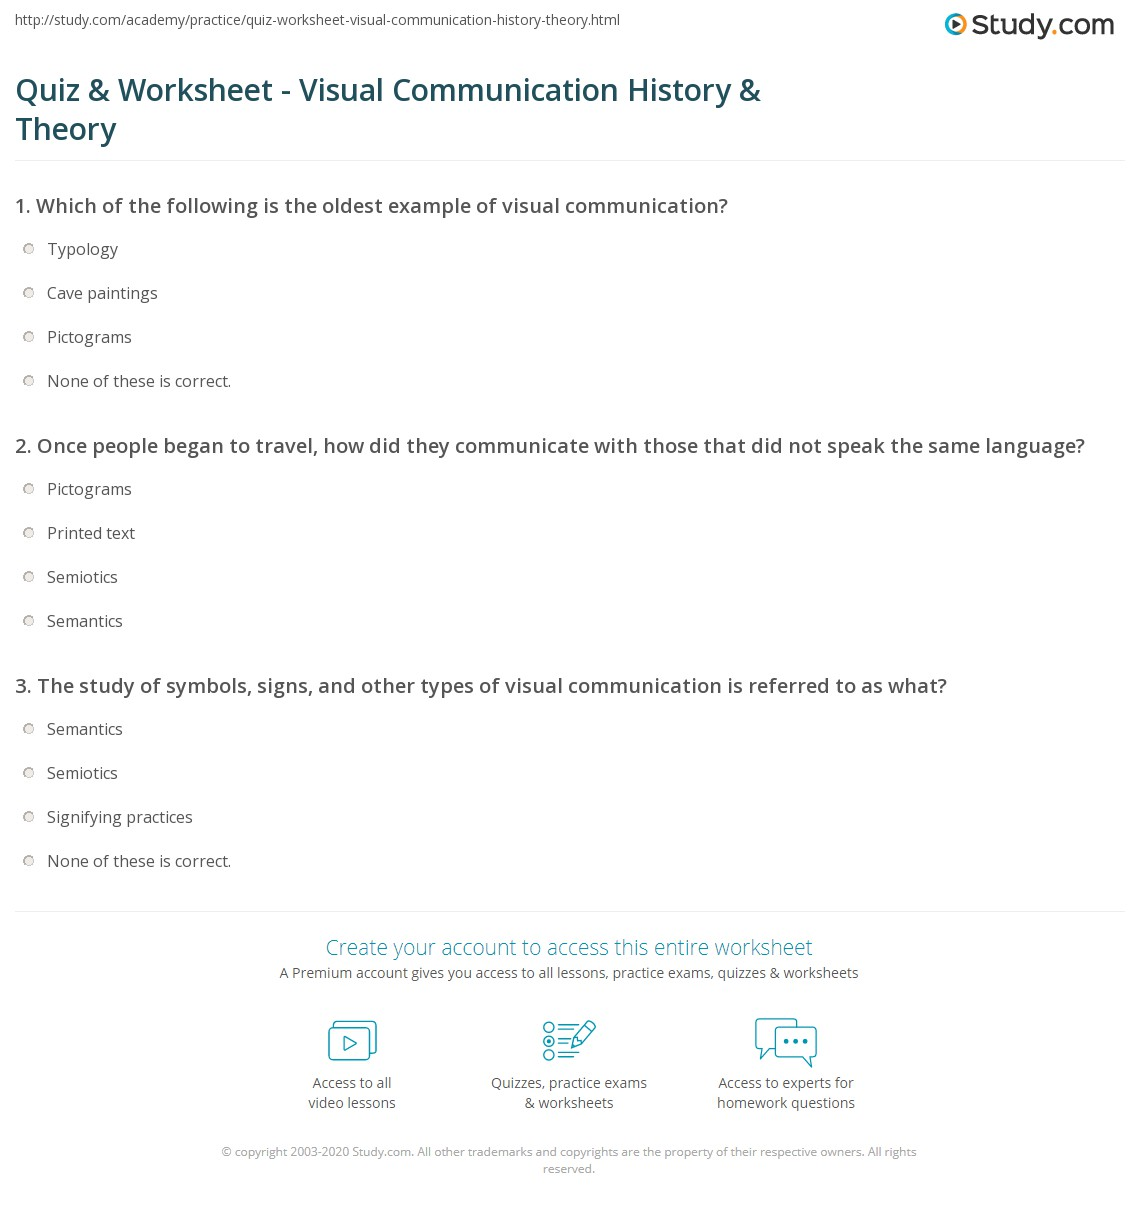 communication theory questions Ec2252 communication theory important questions april may 2014 ec2252 ec2252 ct important expected questions ece 4th semester april may.